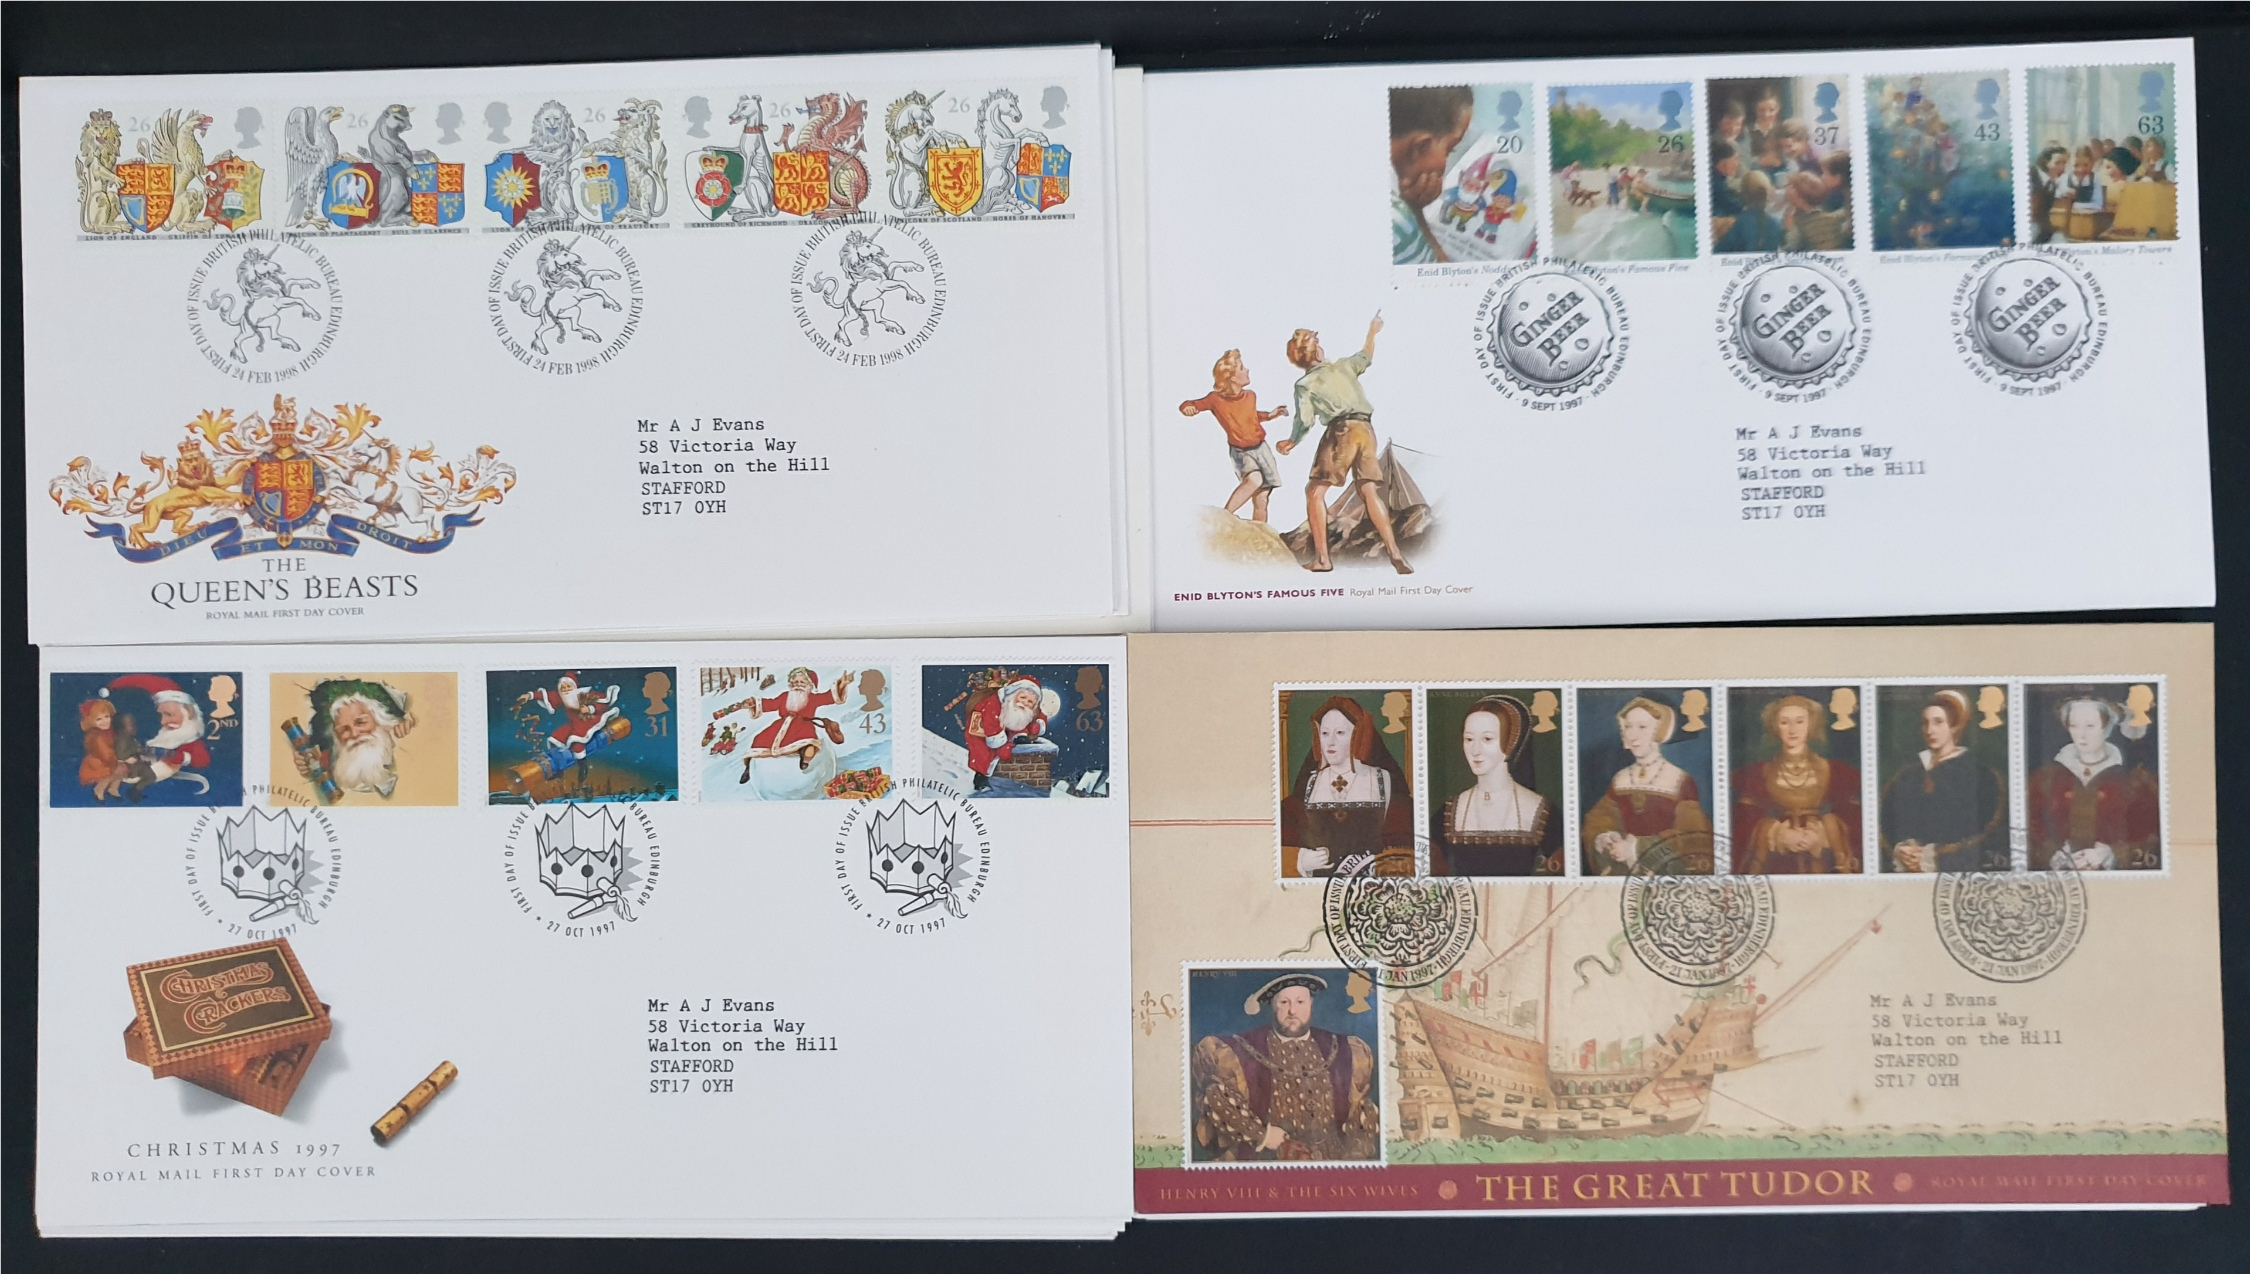 20 x Collectable Vintage First Day Covers 1997/98